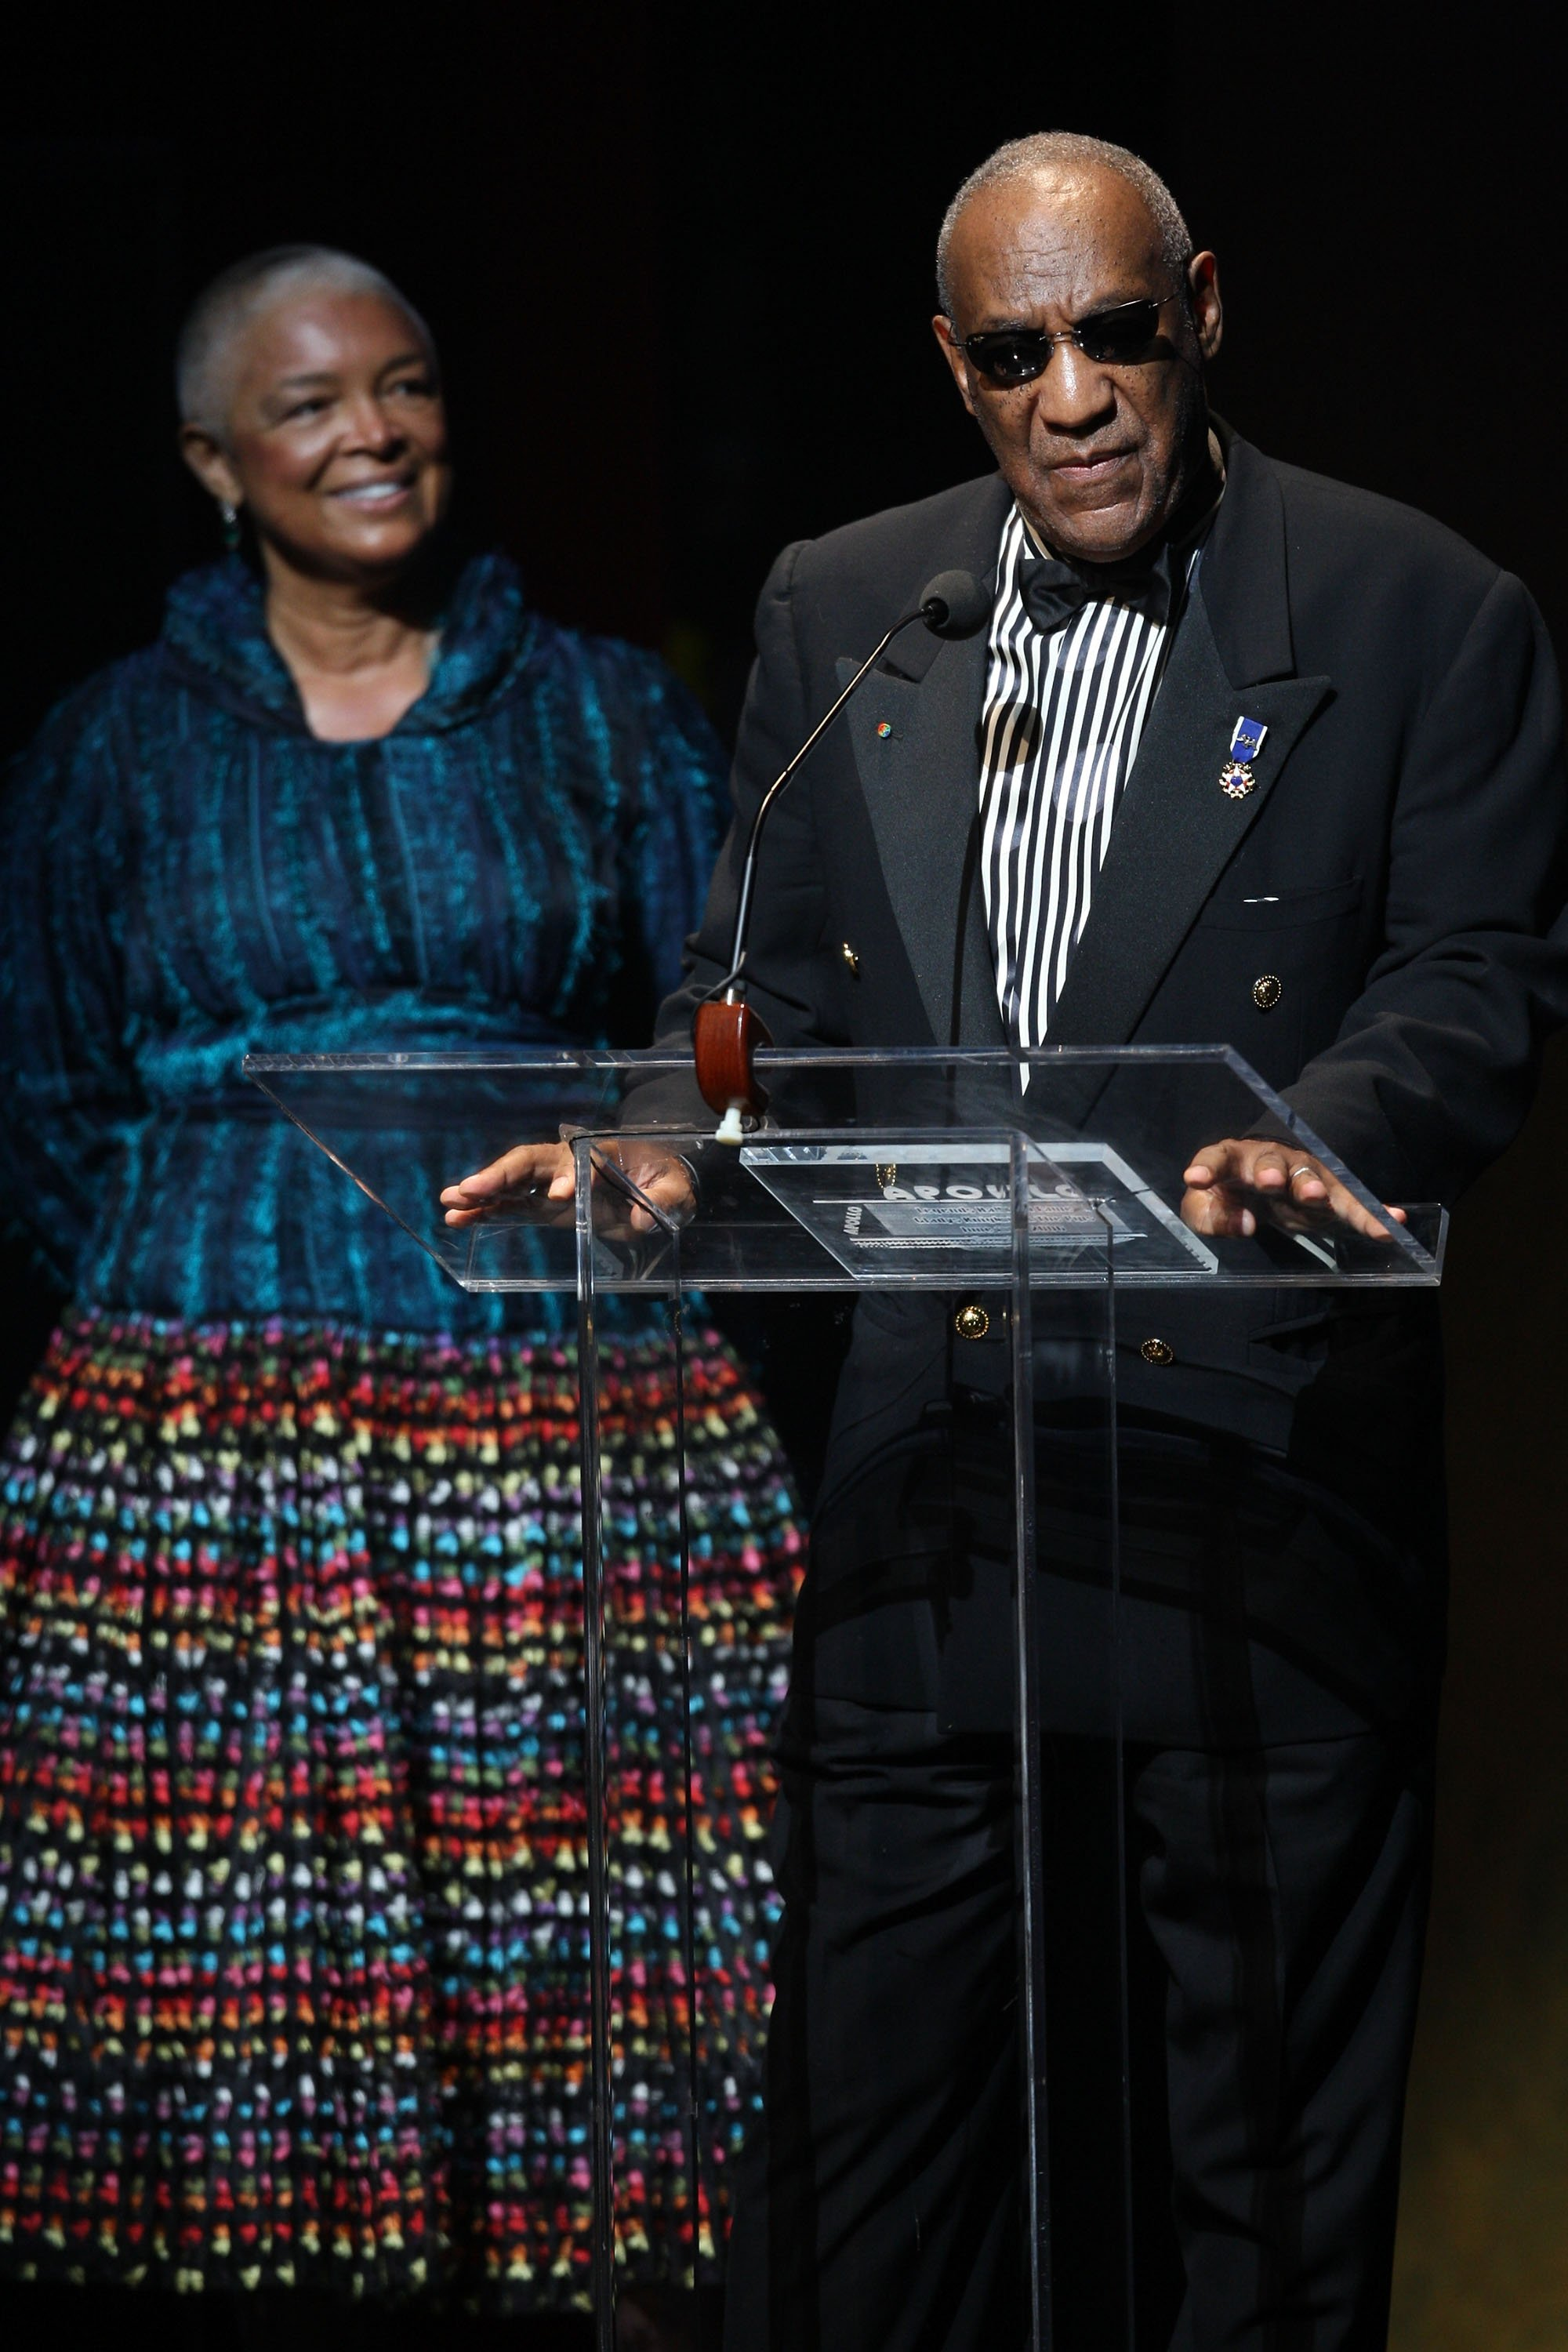 Bill Cosby and his wife Camille Cosby speak onstage at the Apollo Theater 75th Anniversary Gala at The Apollo Theater on June 8, 2009, in New York City.   Source: Getty Images.